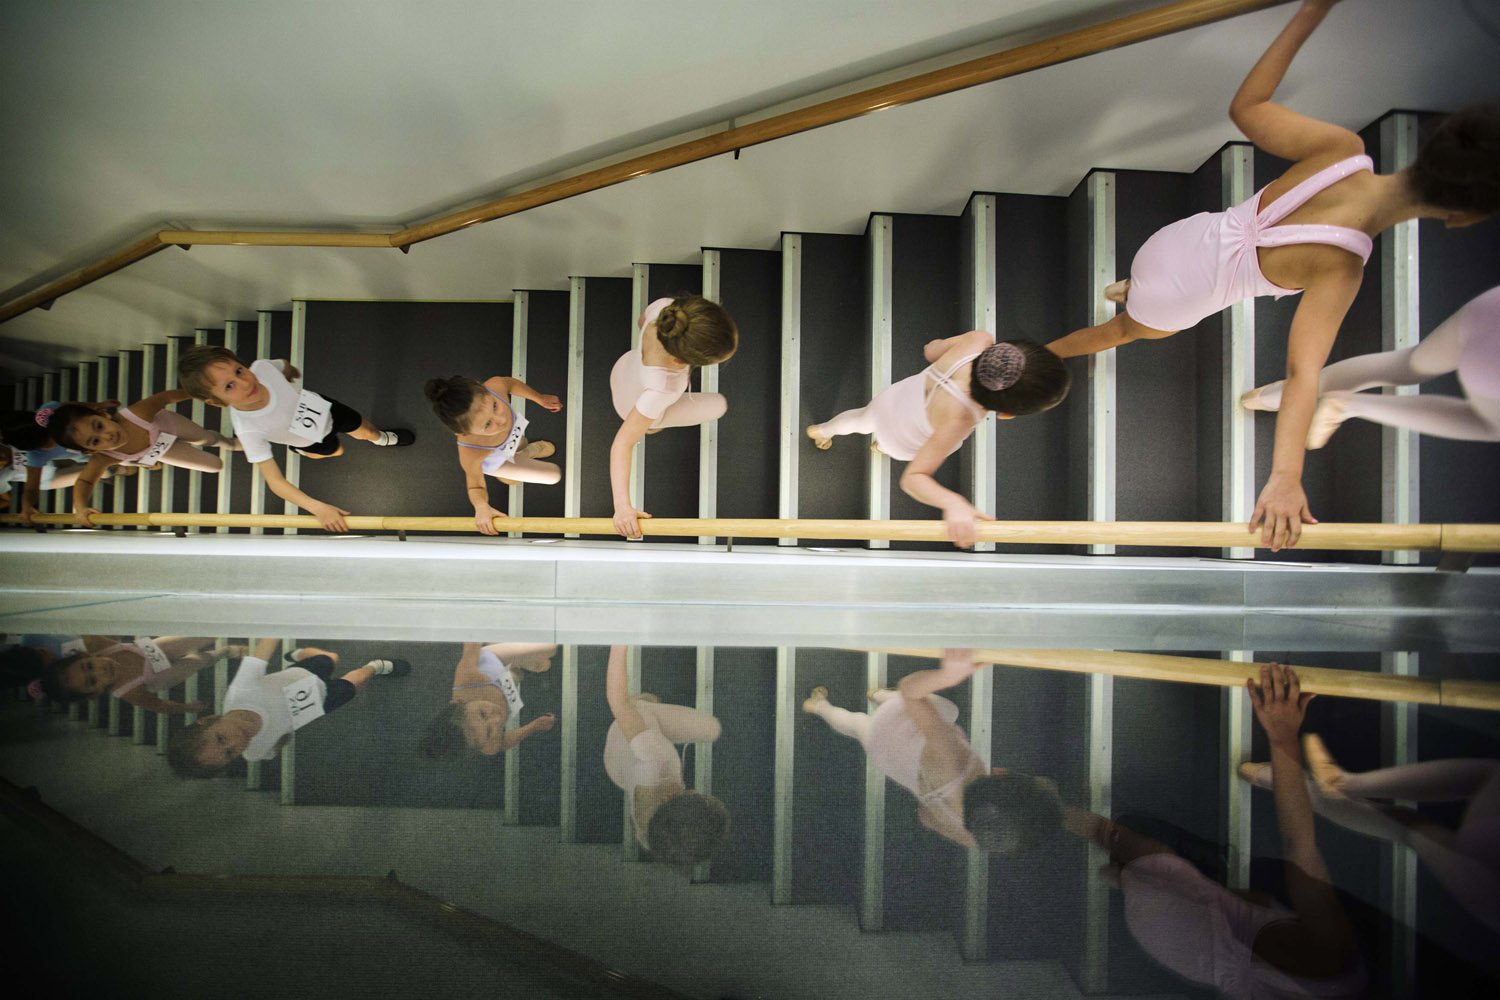 April 5, 2013. Young ballet dancers climb a staircase to take part in auditions for six-year-olds at the School of American Ballet (SAB) at Lincoln Center in New York.